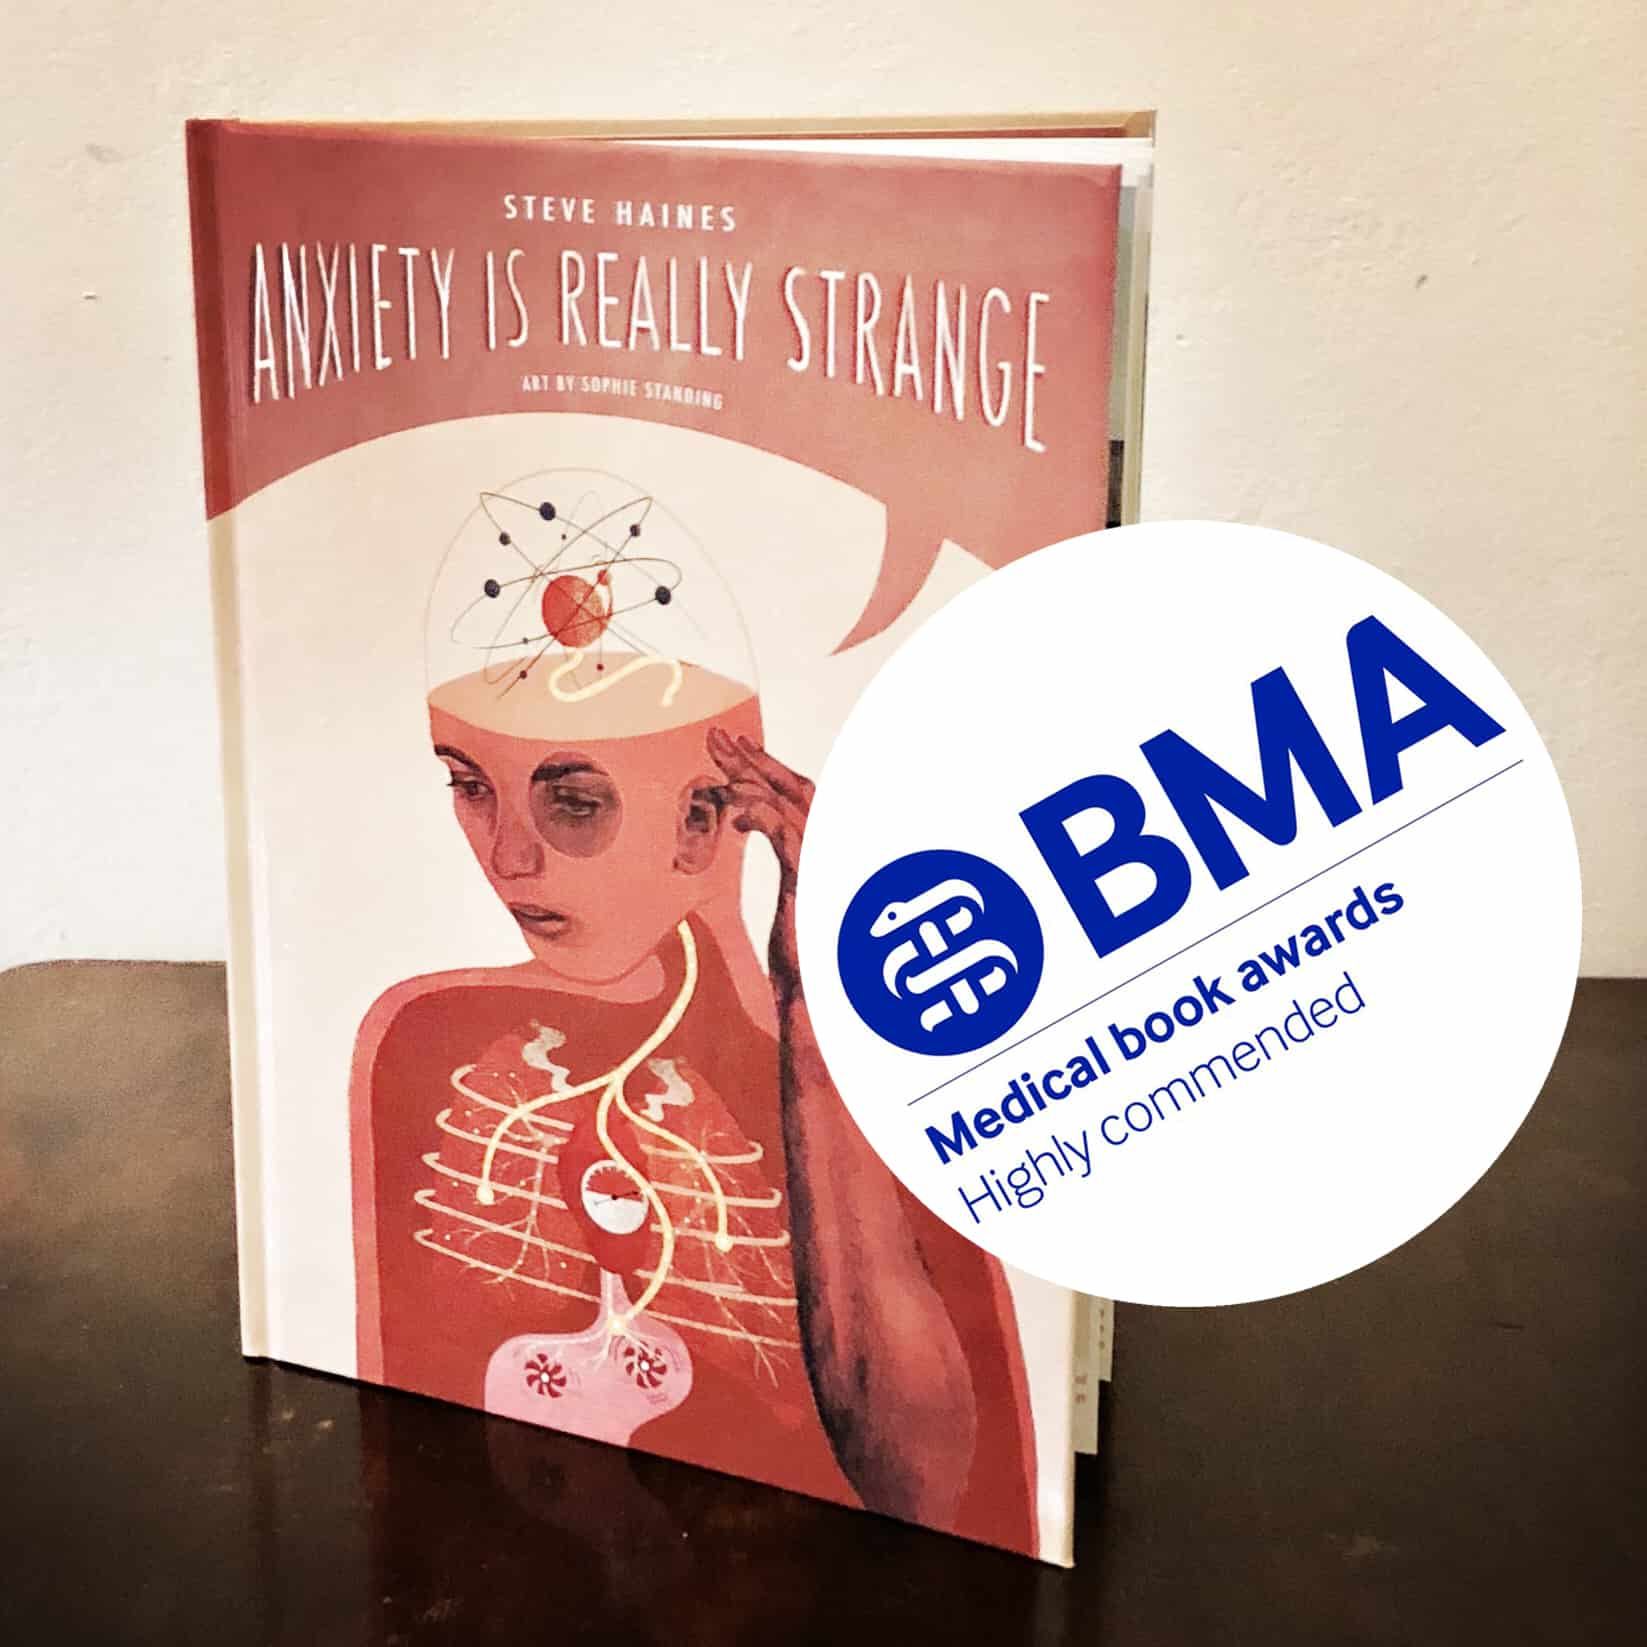 Anxiety Is Really Strange wins an award!